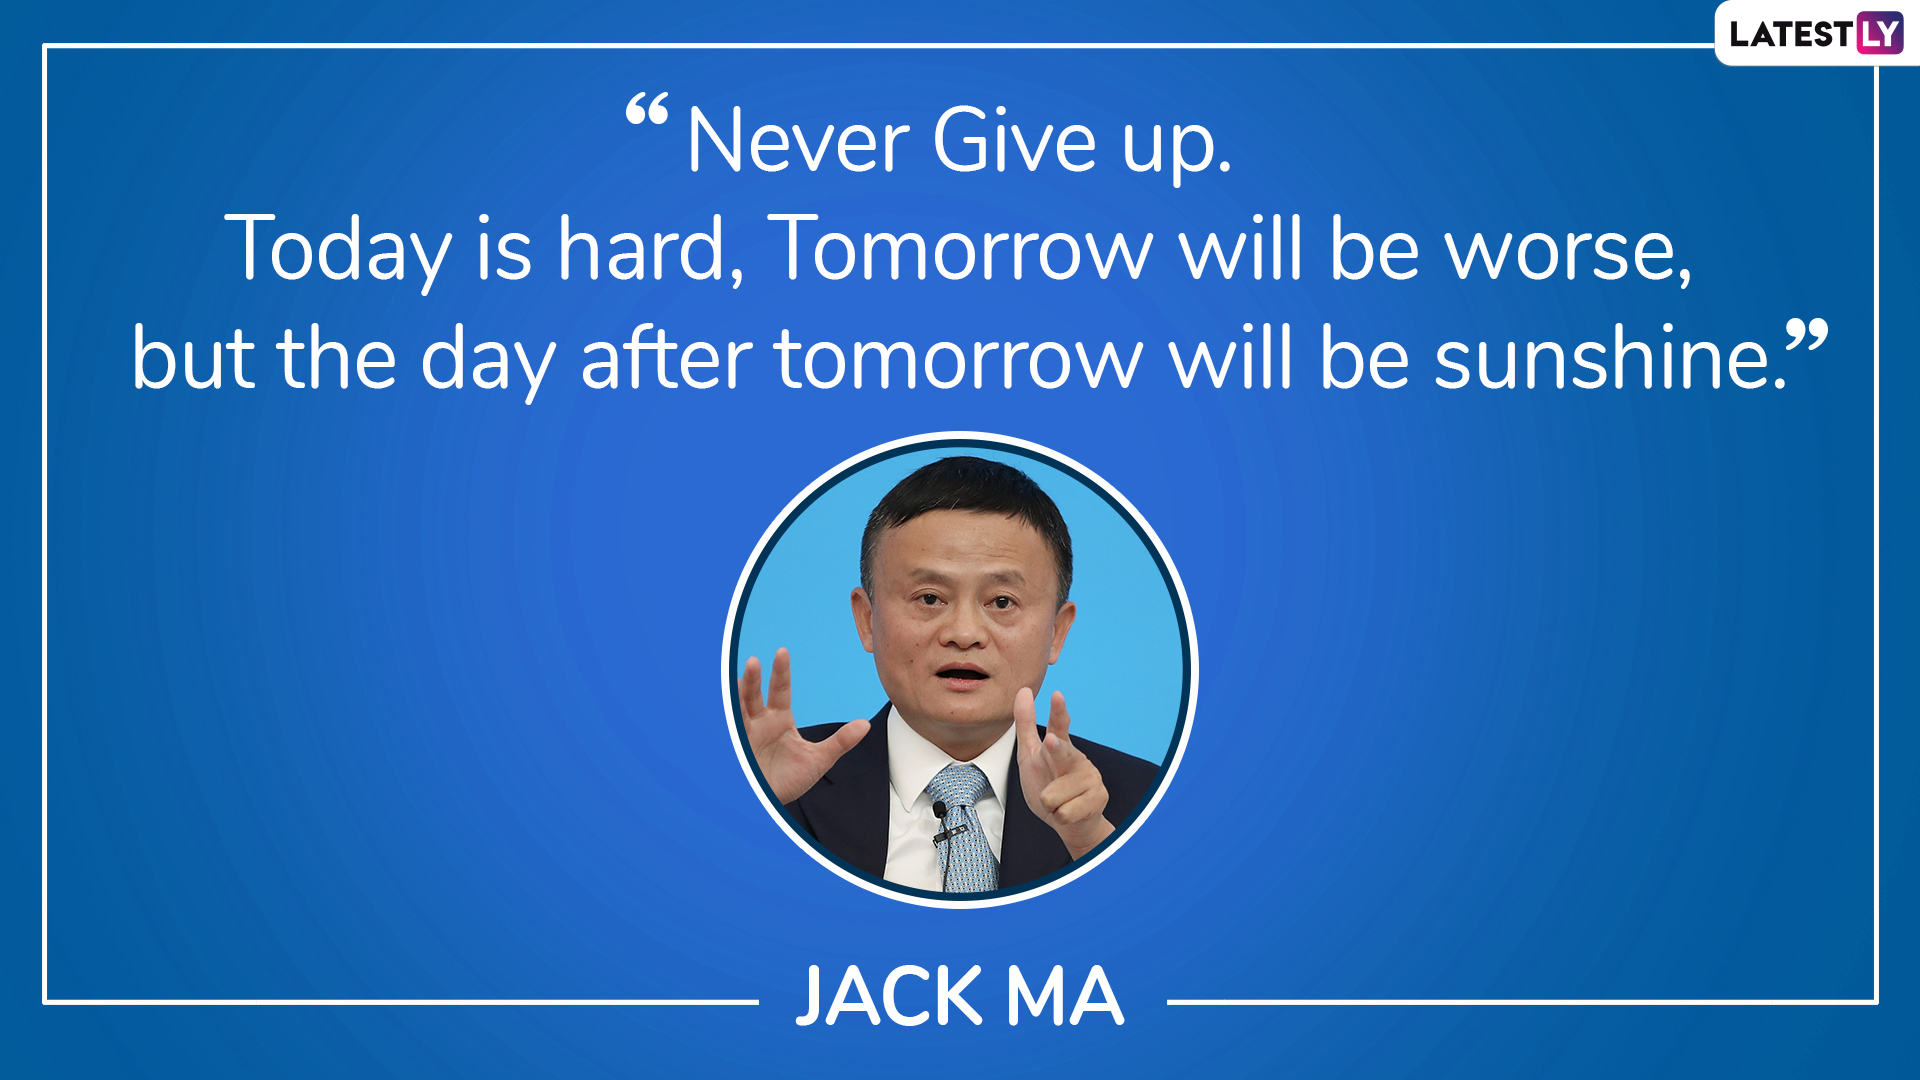 Jack Ma's Inspirational Quote. (Photo Credit: File Image)